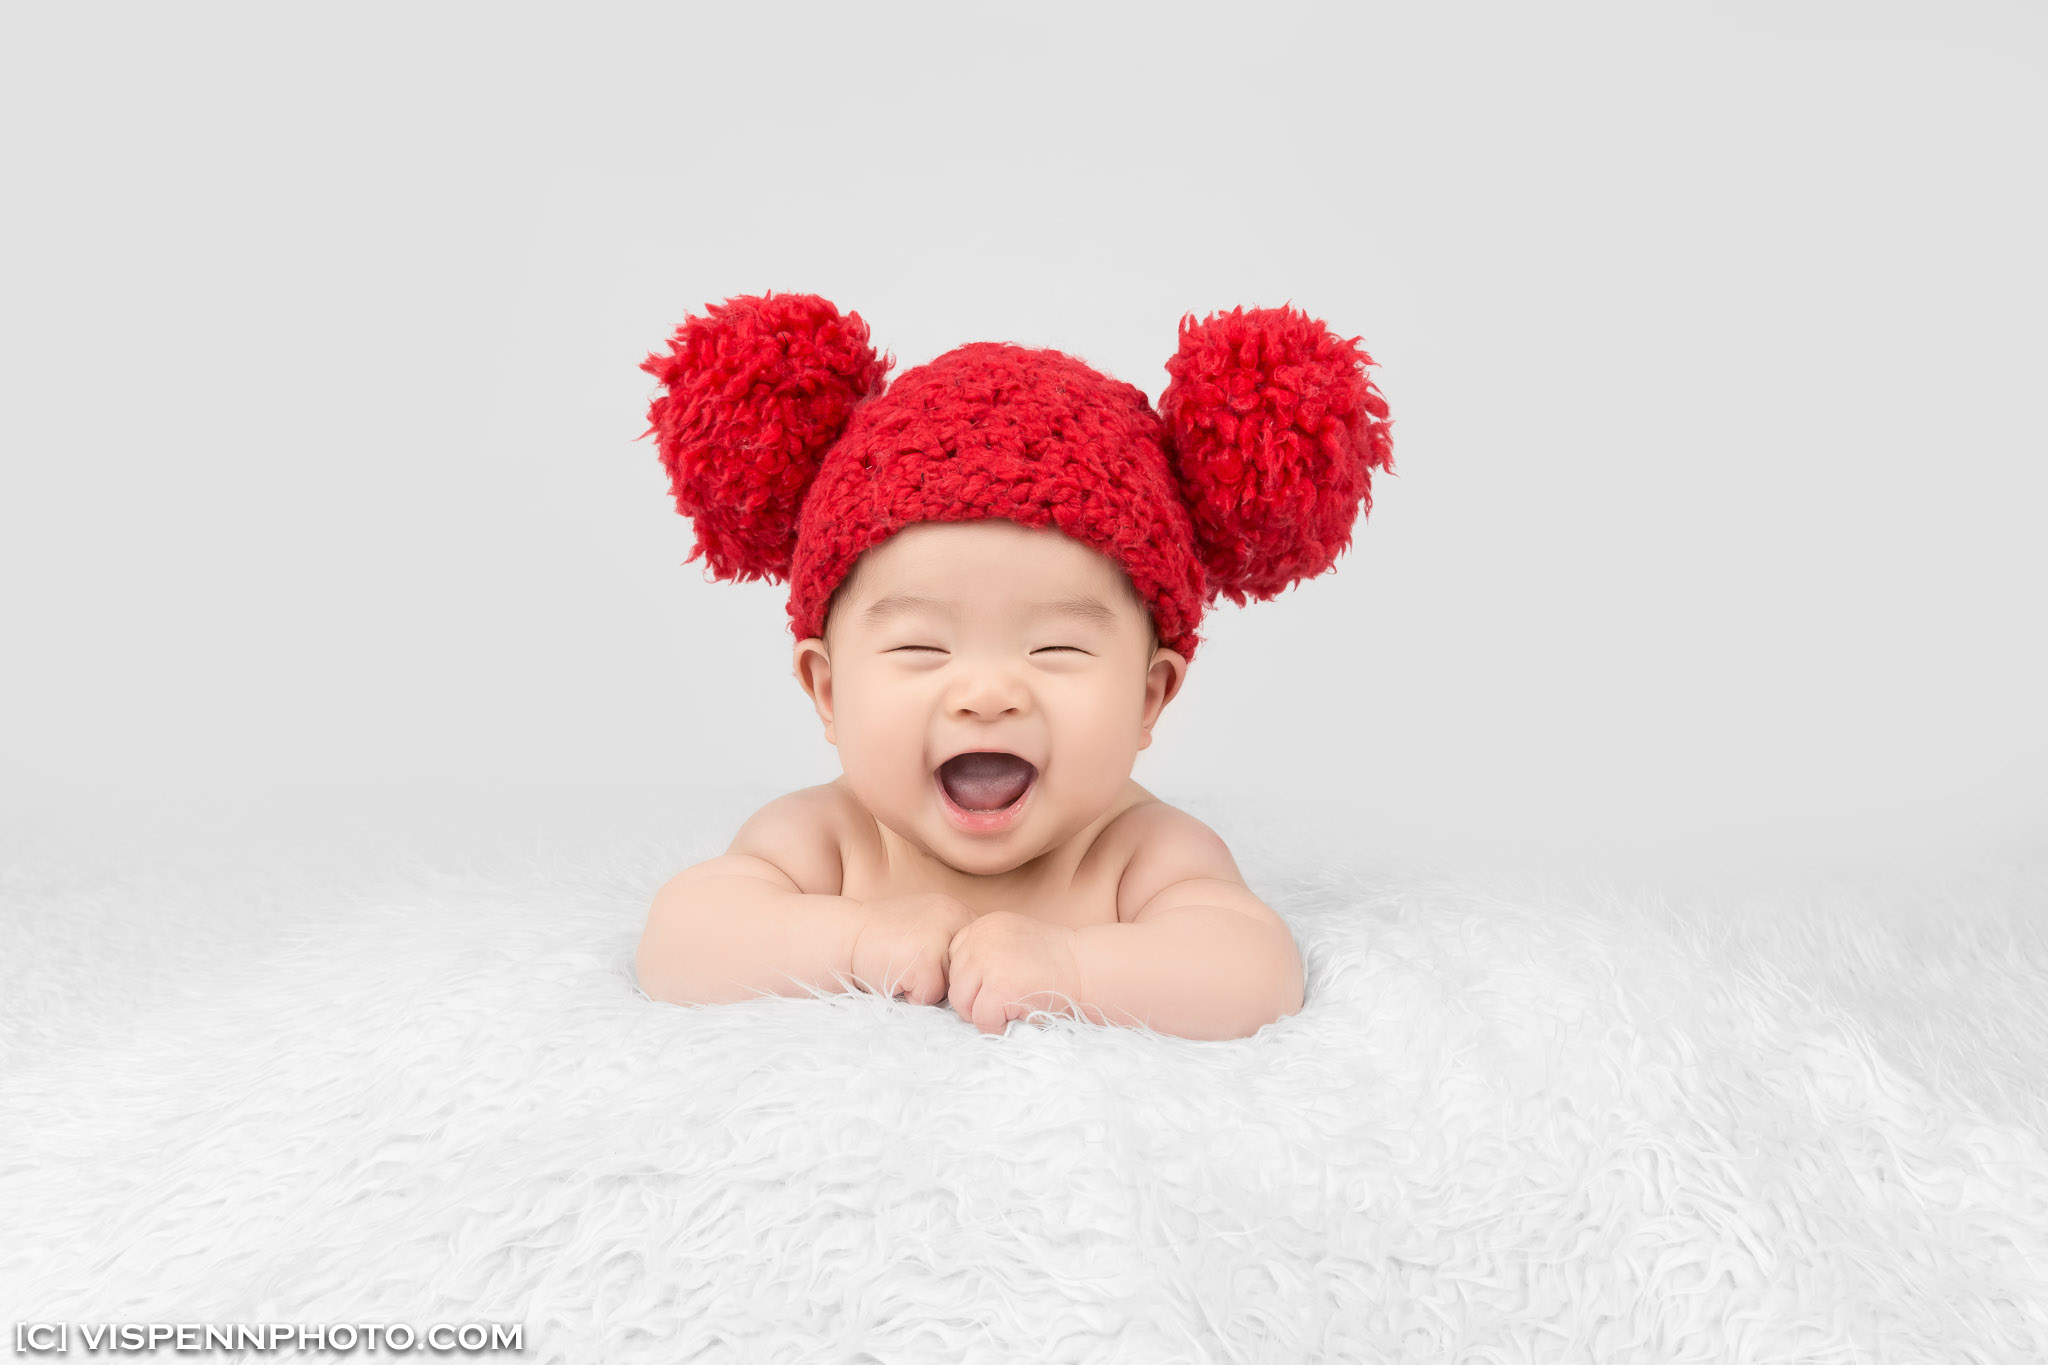 Melbourne Newborn Baby Family Photo BaoBao VISPENN 墨尔本 儿童 宝宝 百天照 满月照 孕妇照 全家福 100DAYS VISPENN SallyPU 1162